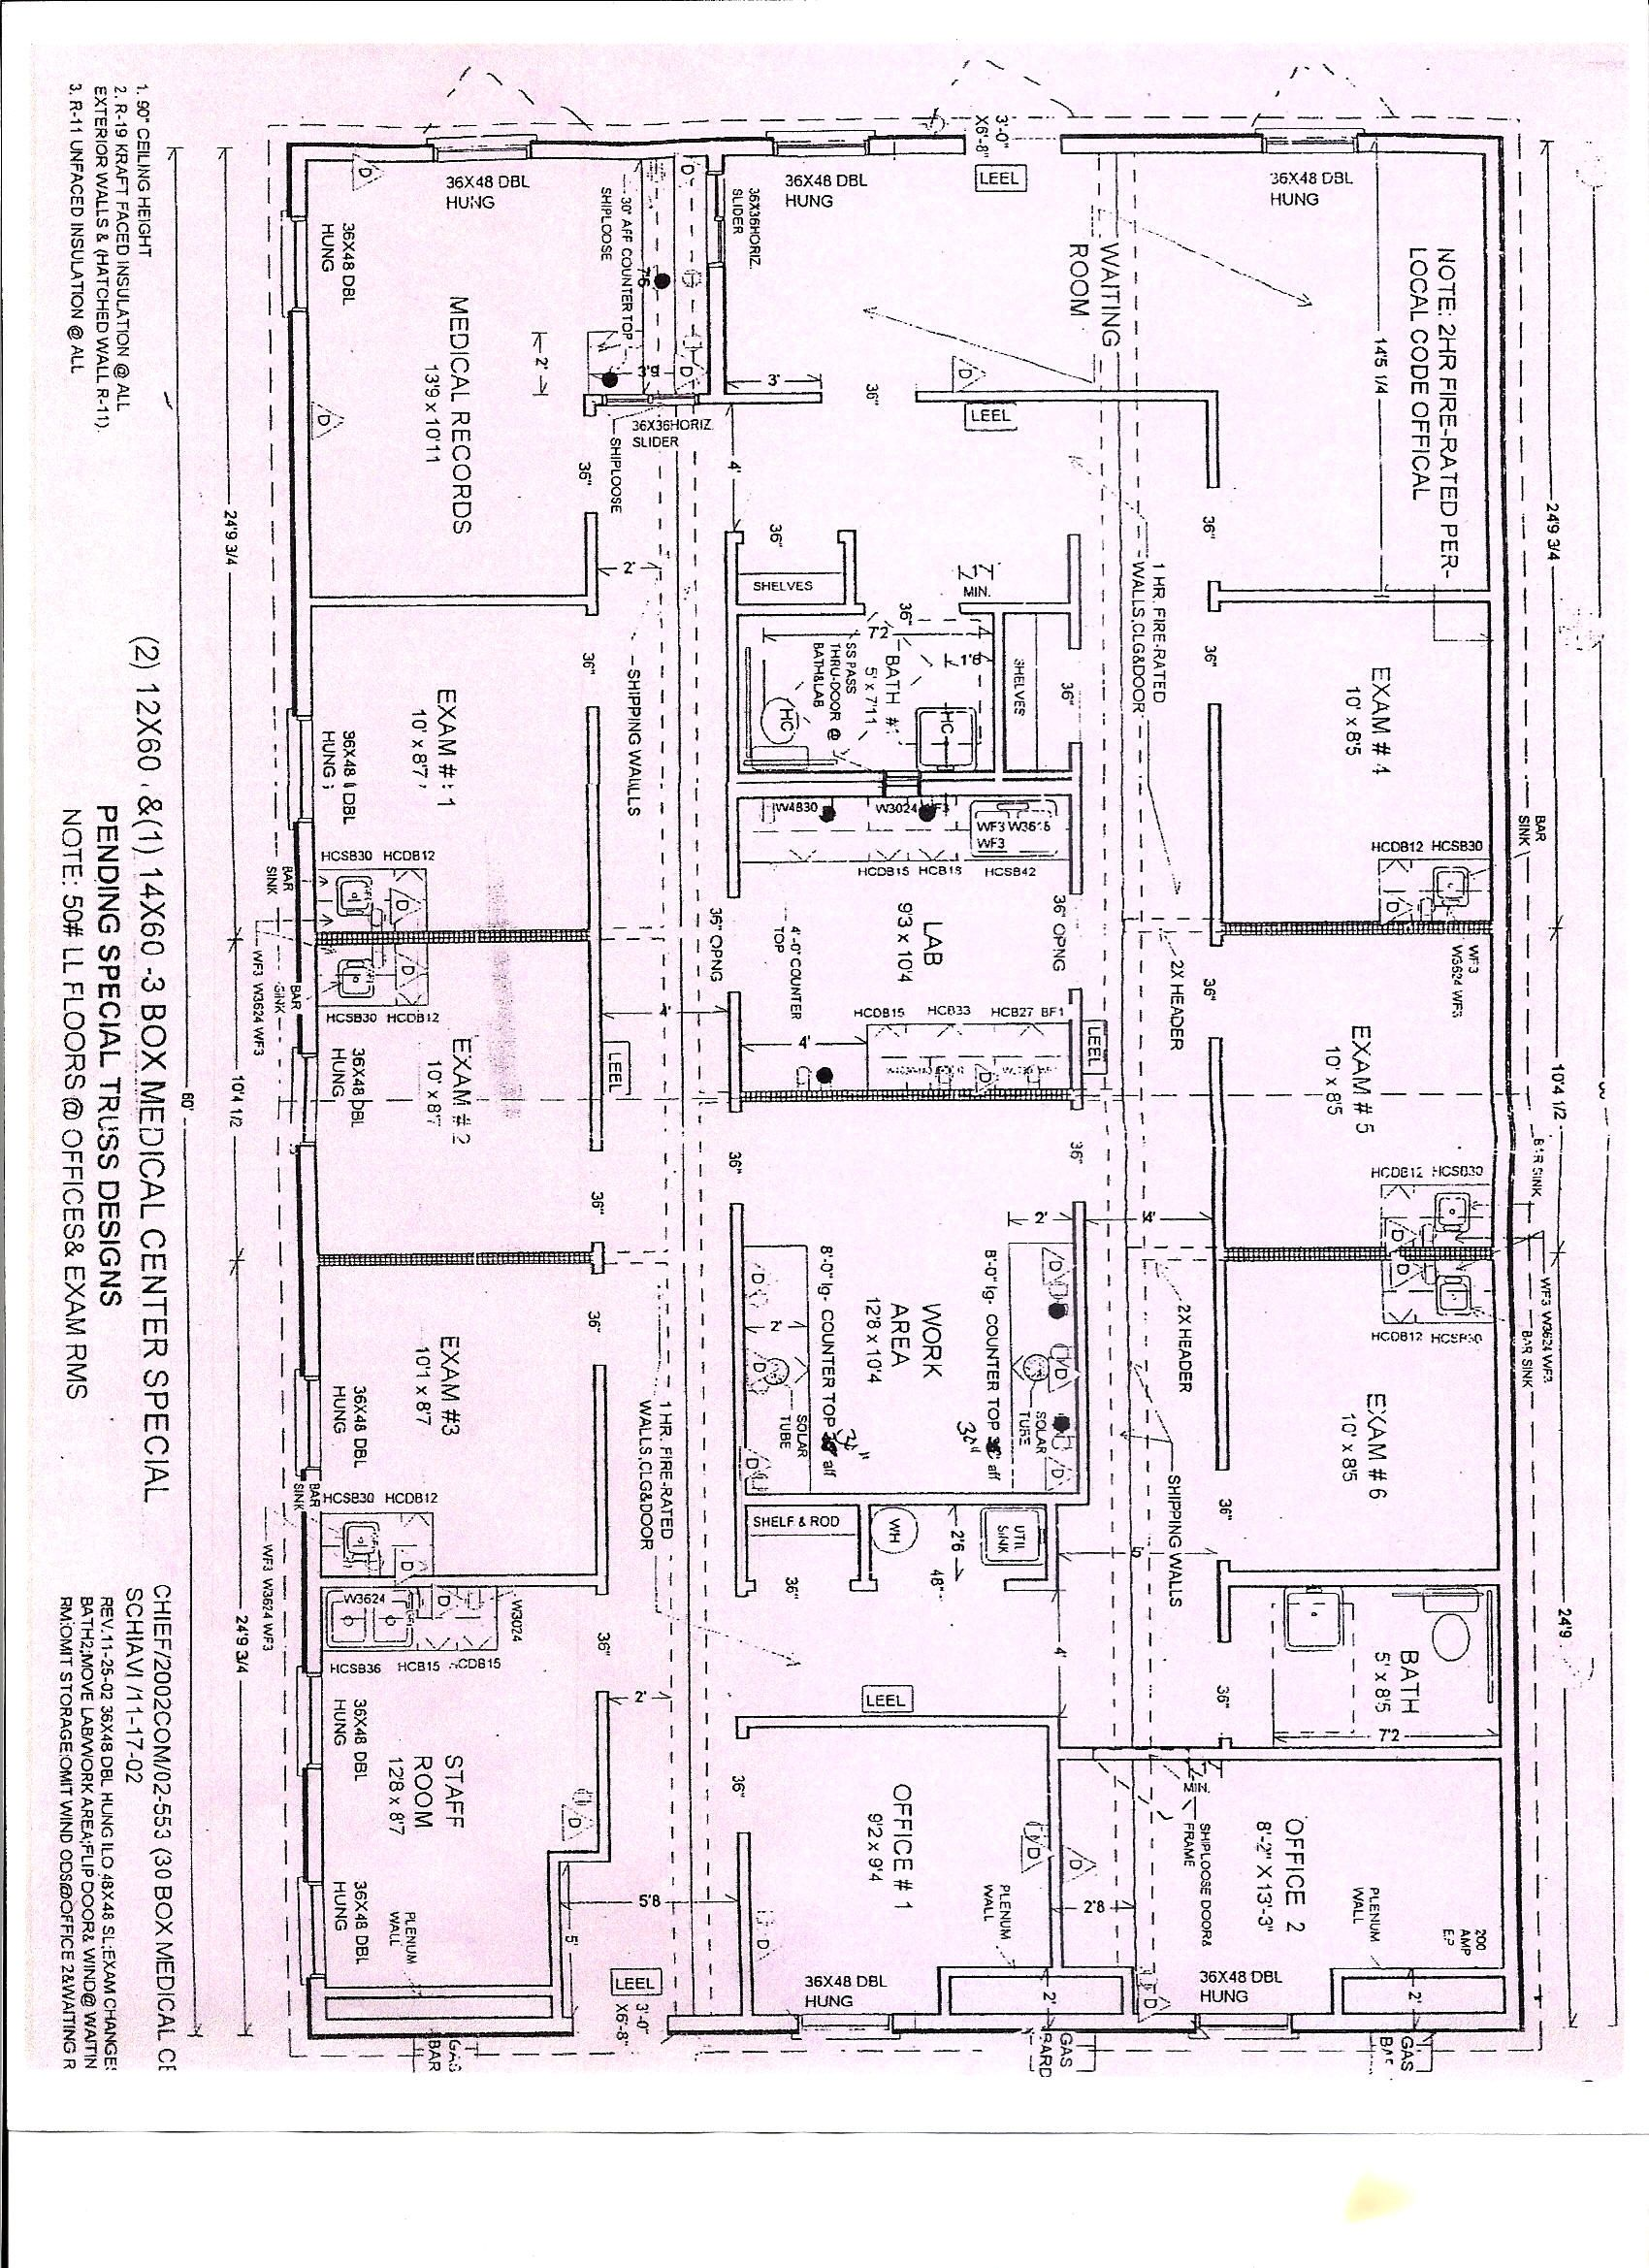 4 wire mobile home wiring diagram 2005 fleetwood mobile home floor plans